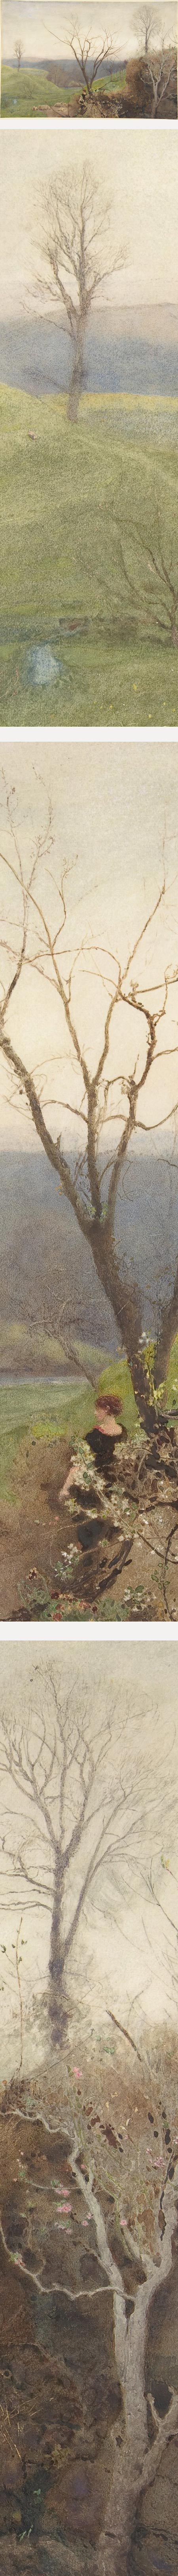 Spring, John William North